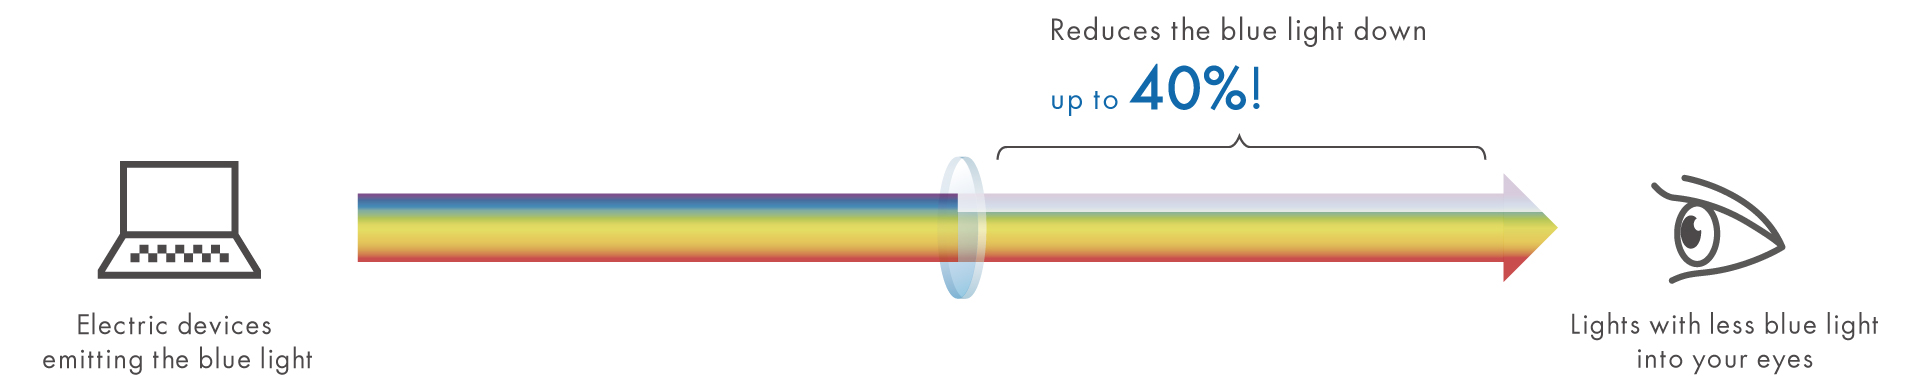 Reduces the blue light down by up to 40%!